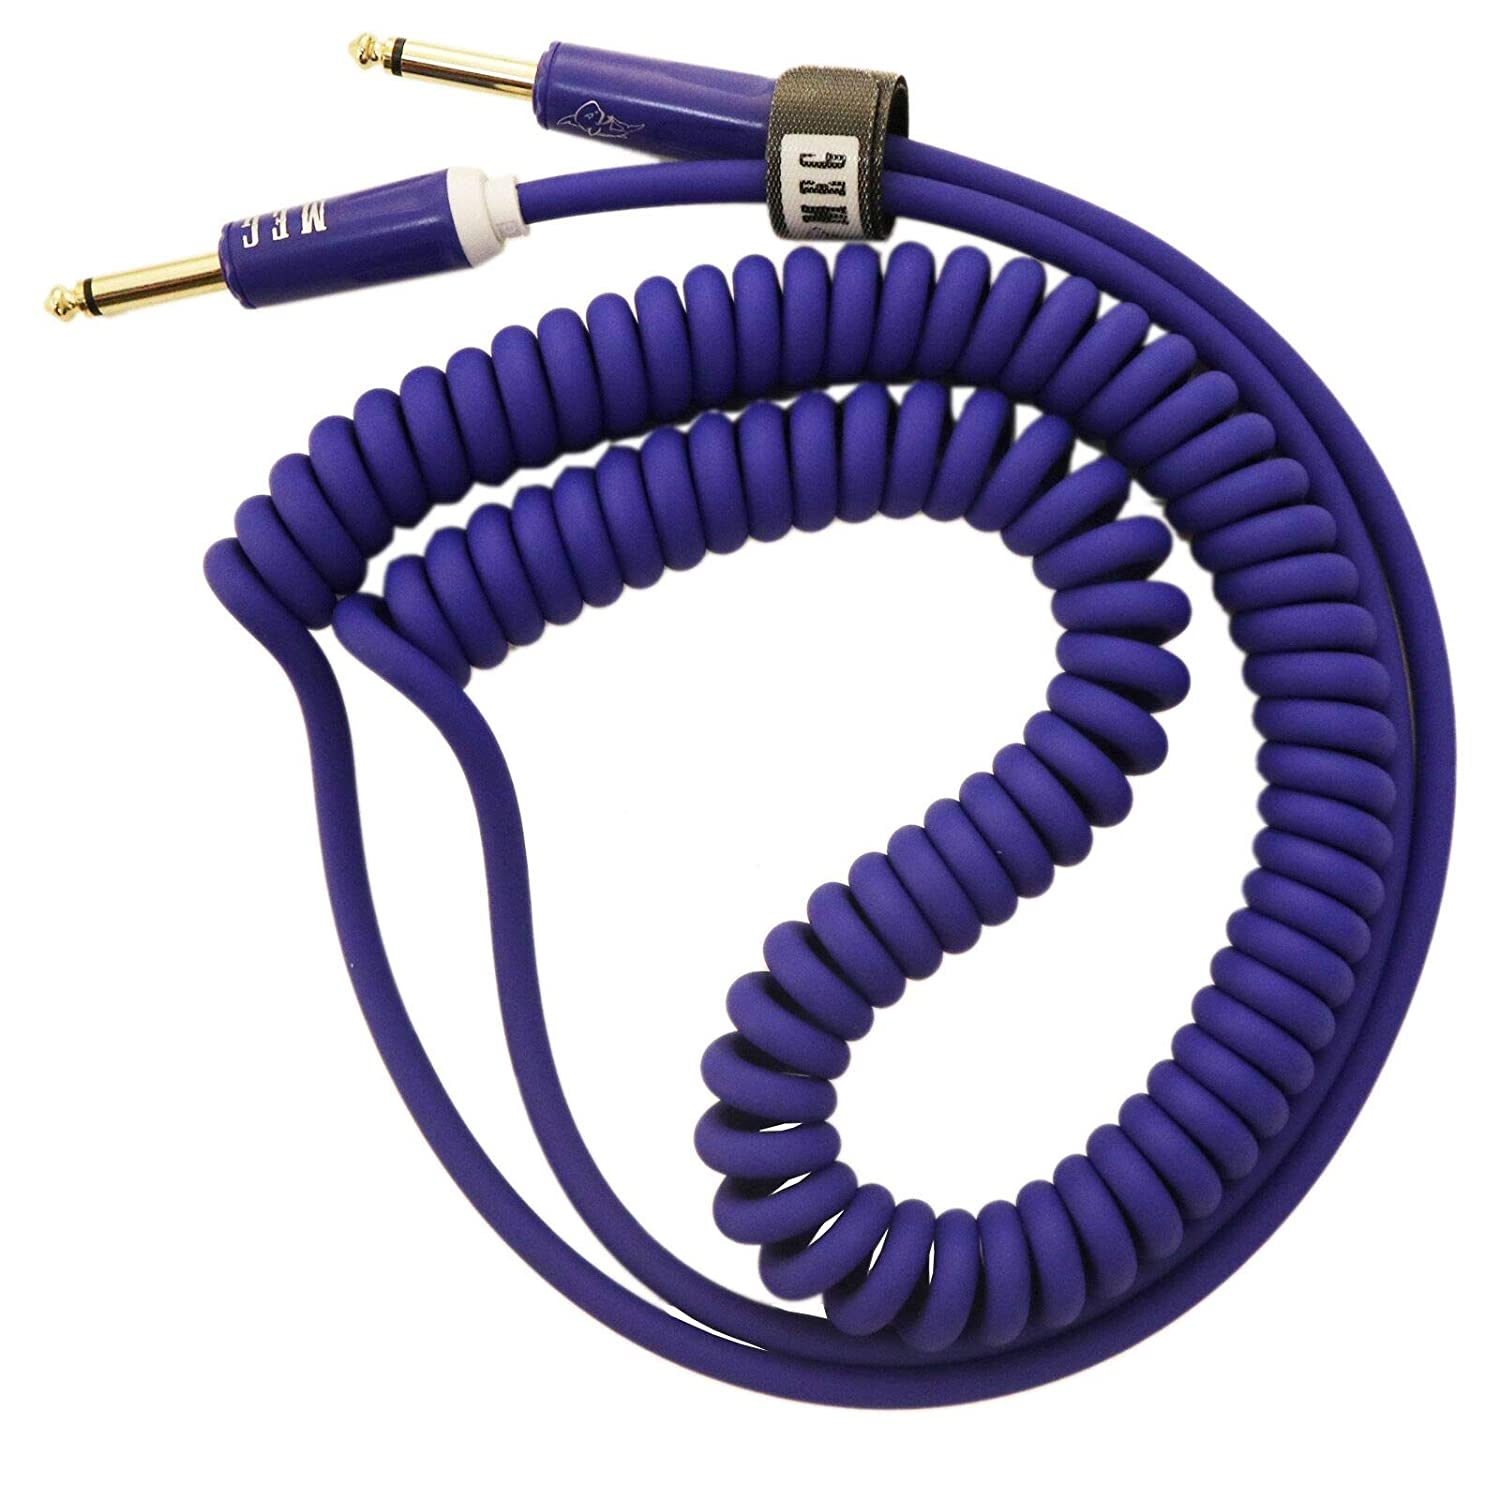 Houston Mall Coiled Guitar Cable Electric Curly Time sale Instrument Cable10ft